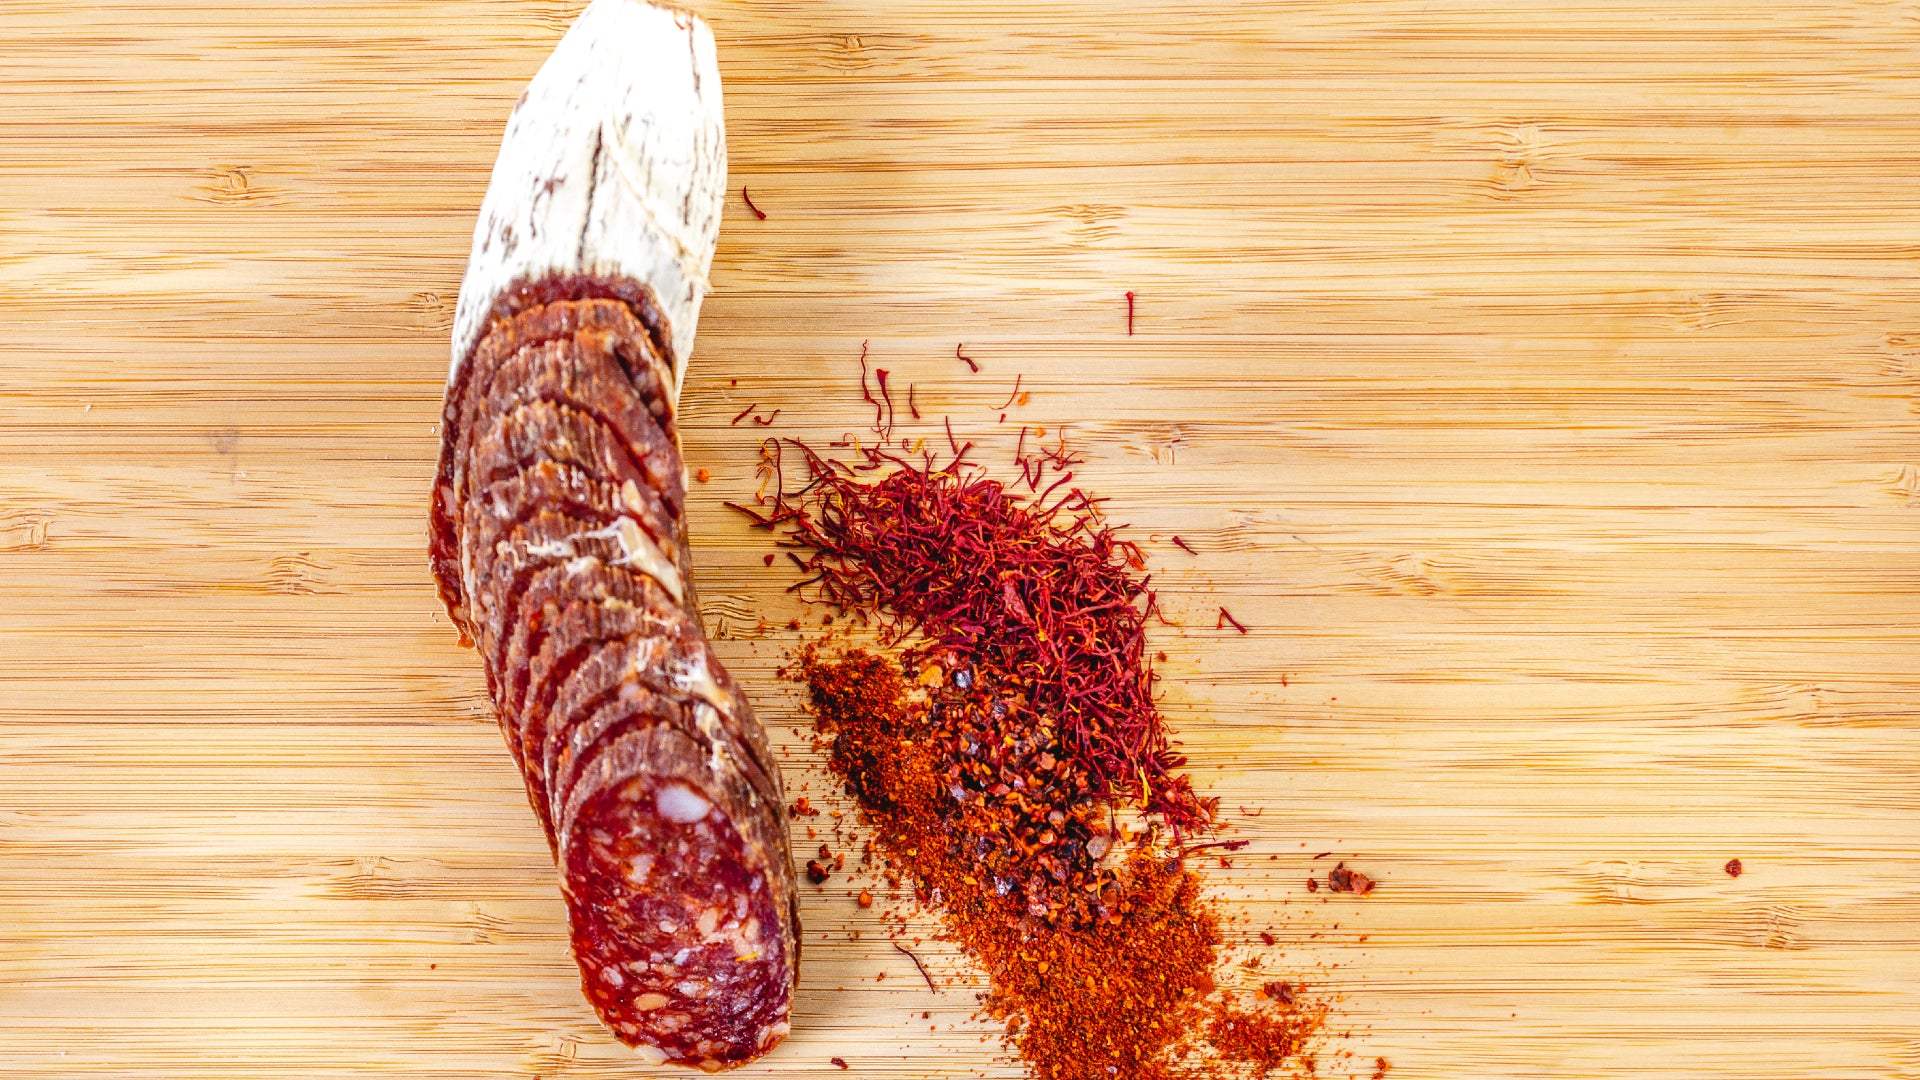 A picture shot from above of Saucisson Basque salami cut into slices on a cutting board next to herbs and spices.